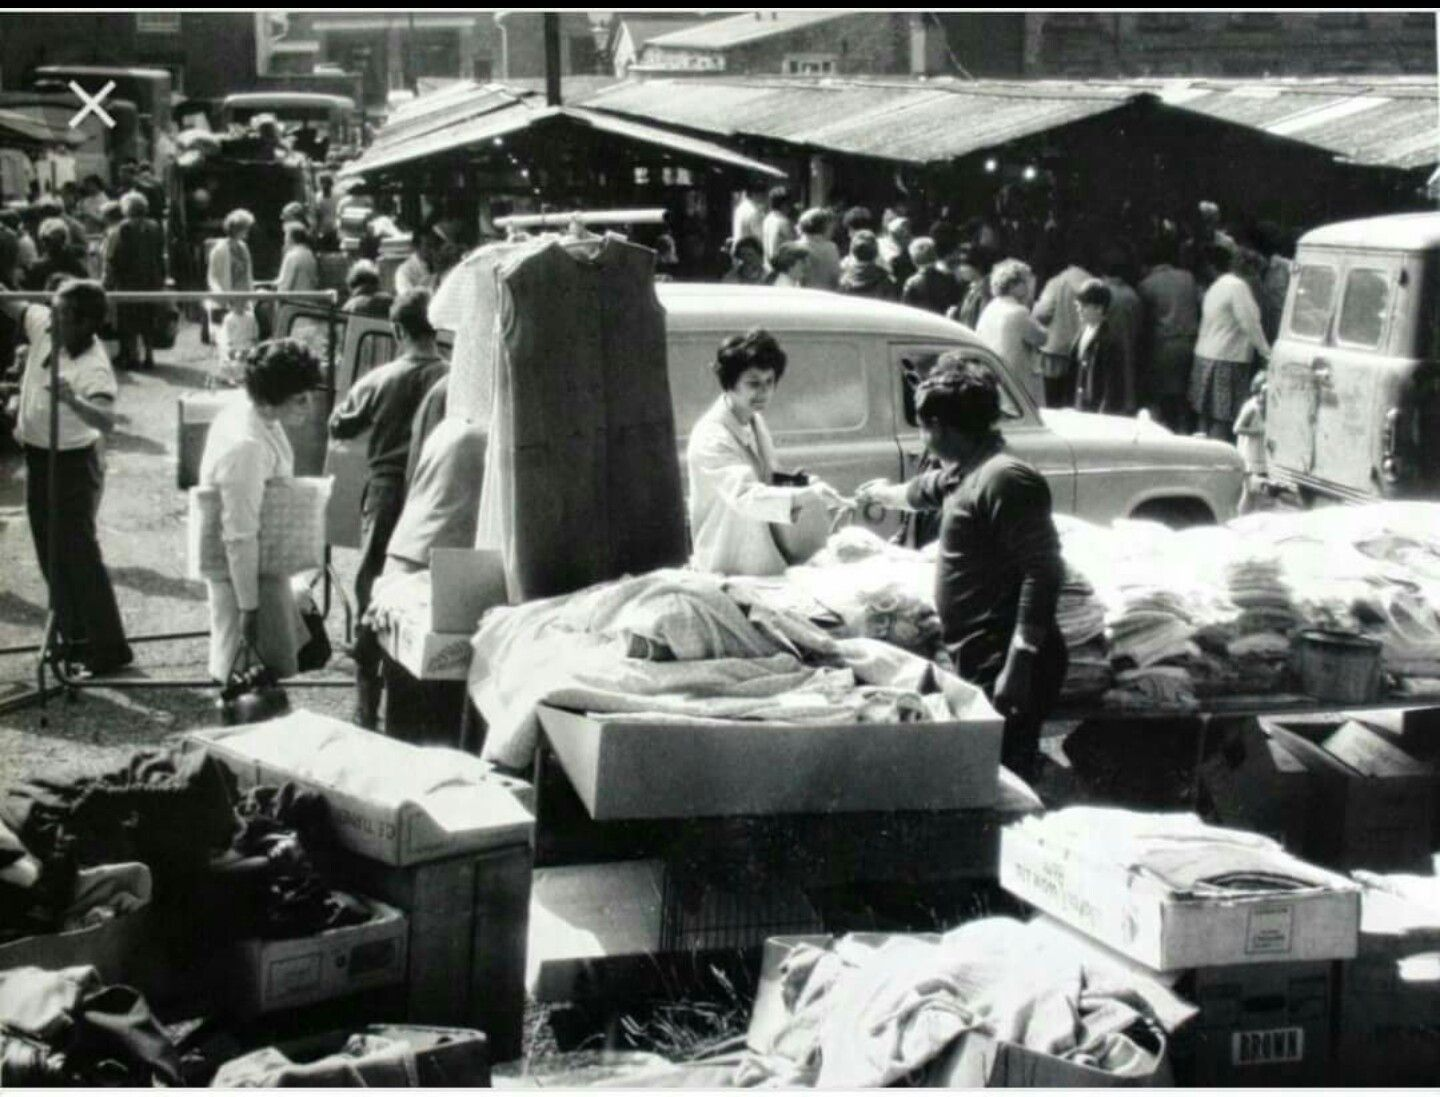 Middleton Market 1960s Greater Manchester Historical Vintage Photos